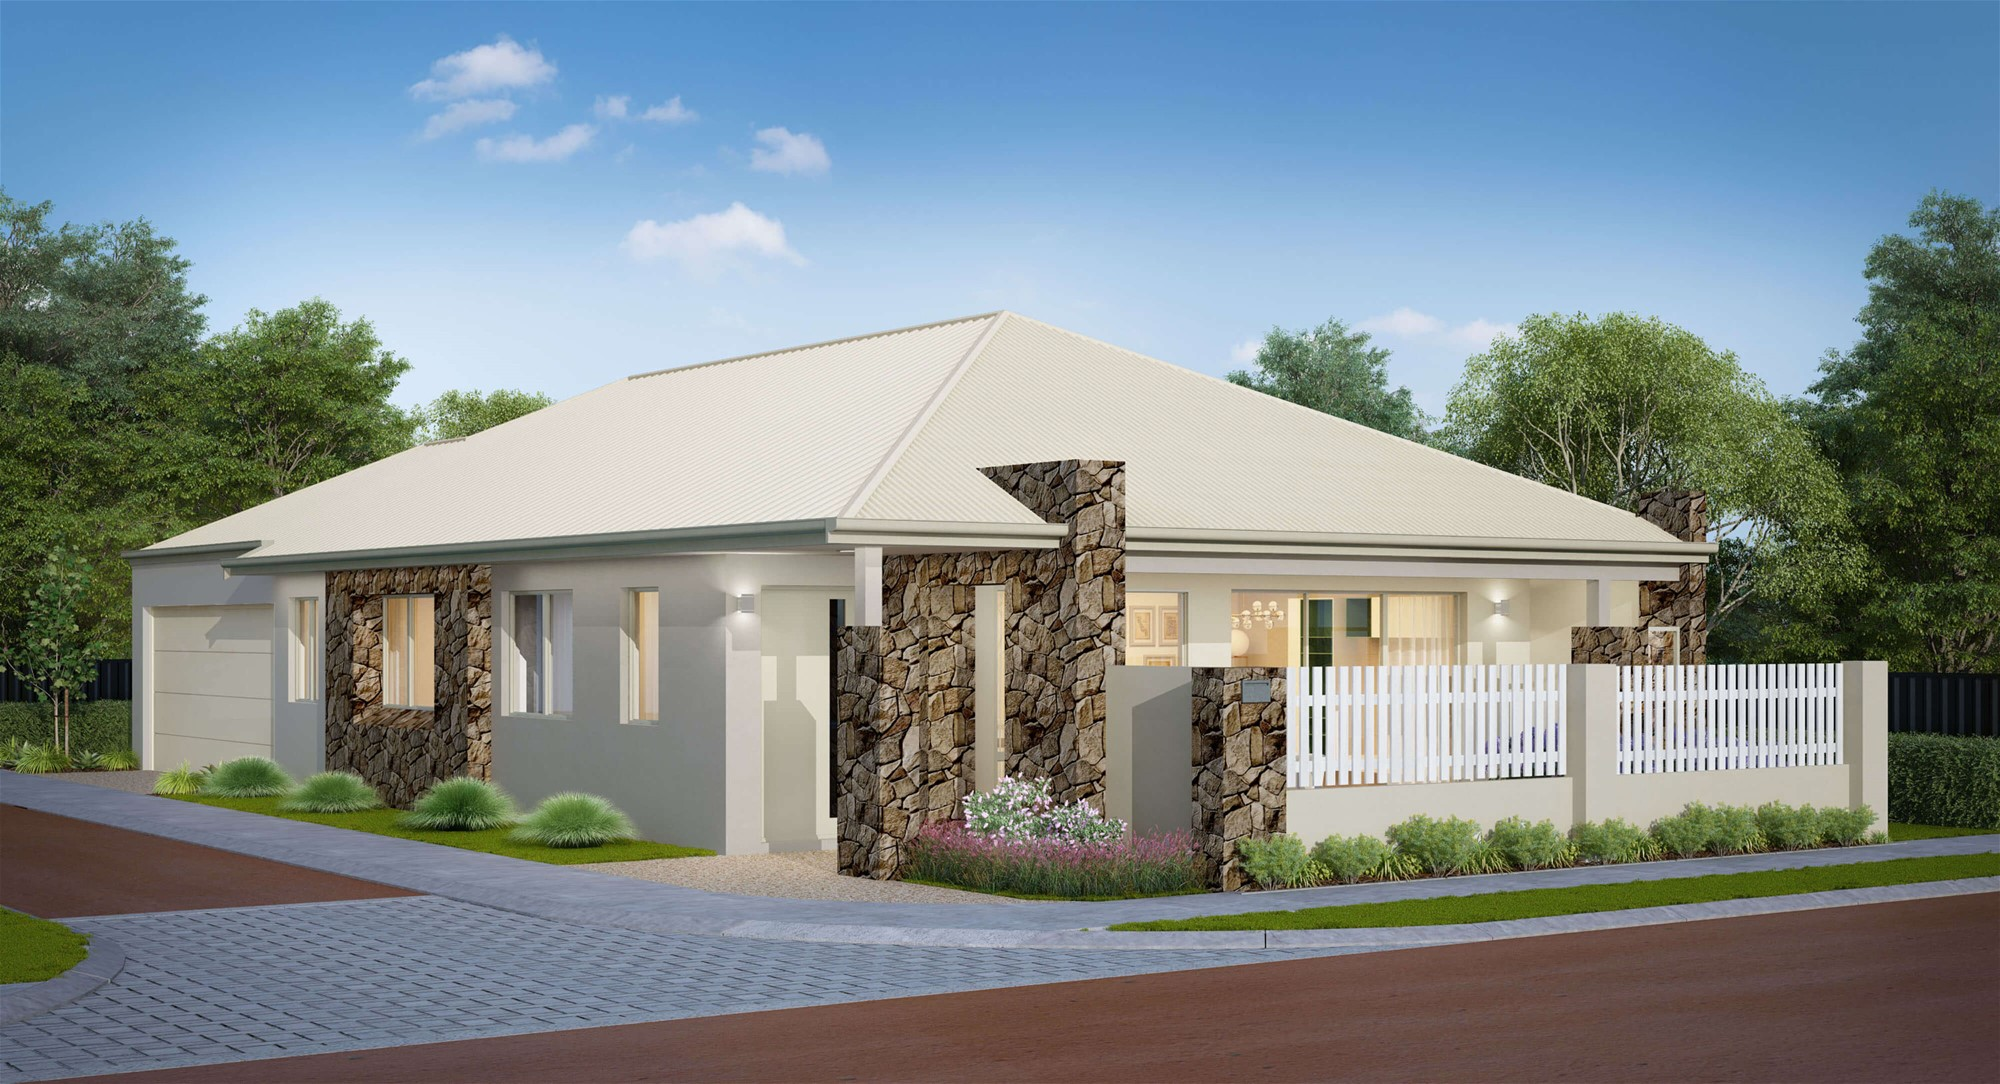 The Green Fairway Village | Over 55s living